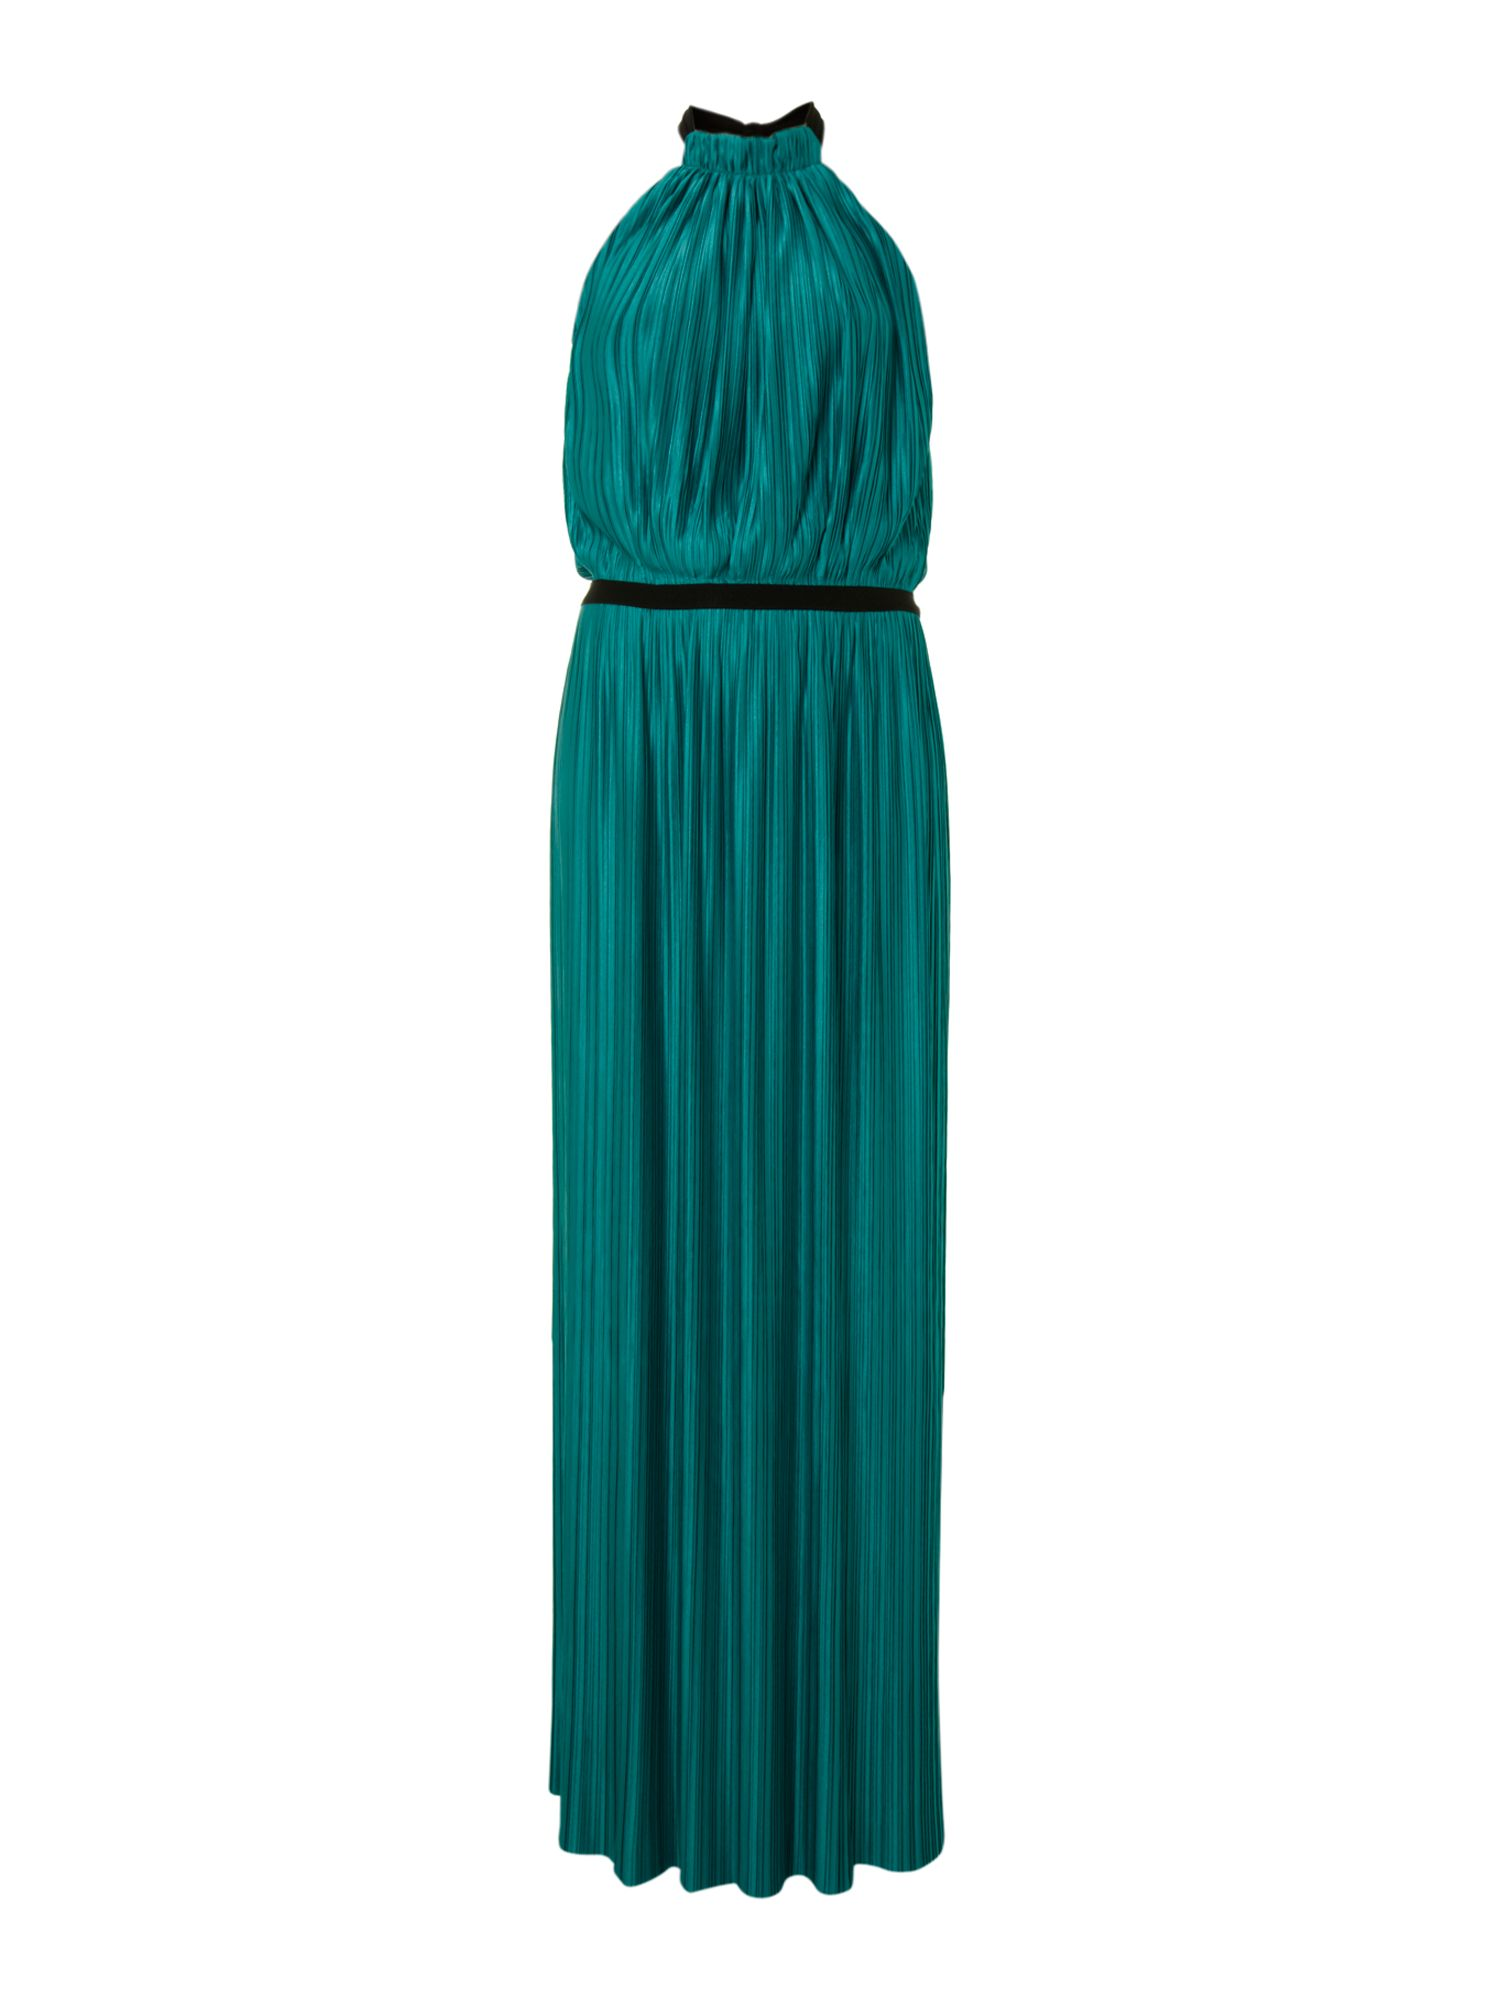 maxi dresses in teal